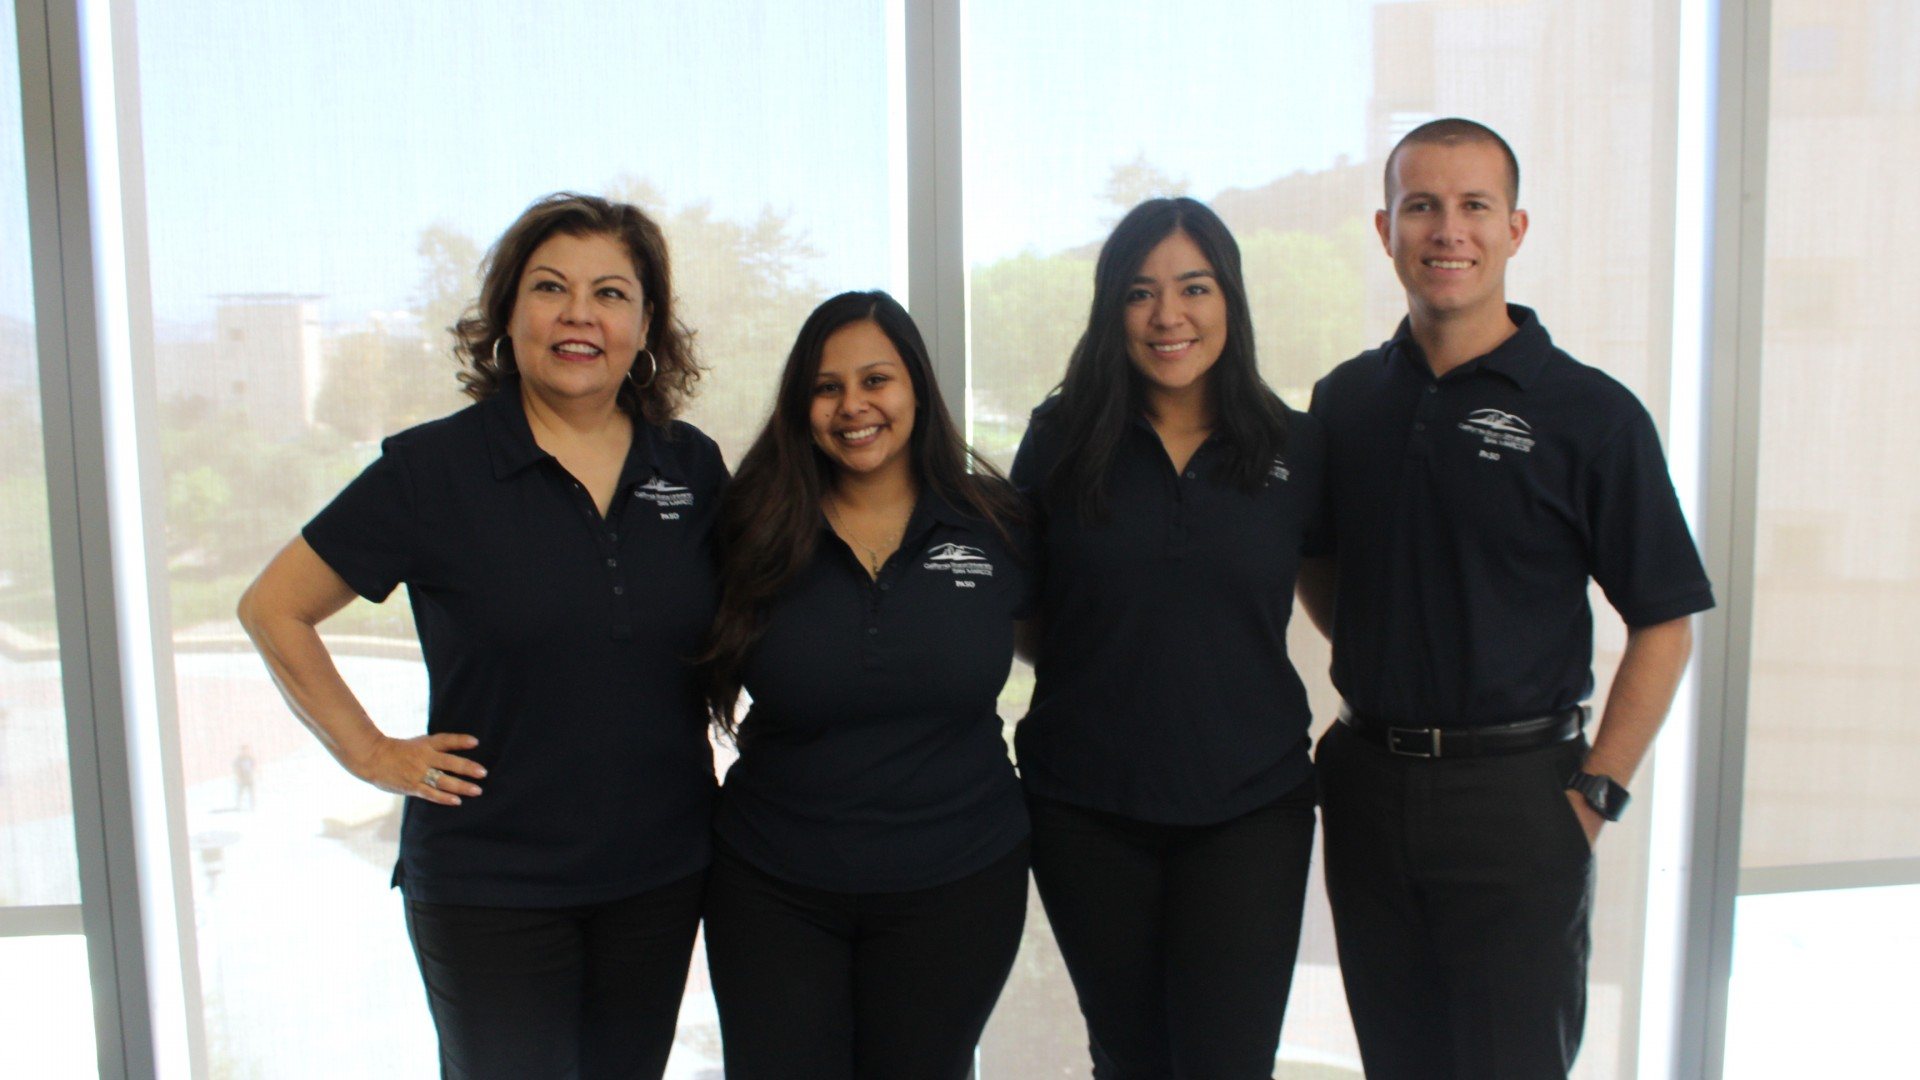 Minerva Gonzalez (left), director of the PASO program, is pictured with PASO staff members Sabrina Holguin, Monica Huerta and Salvador Perez.